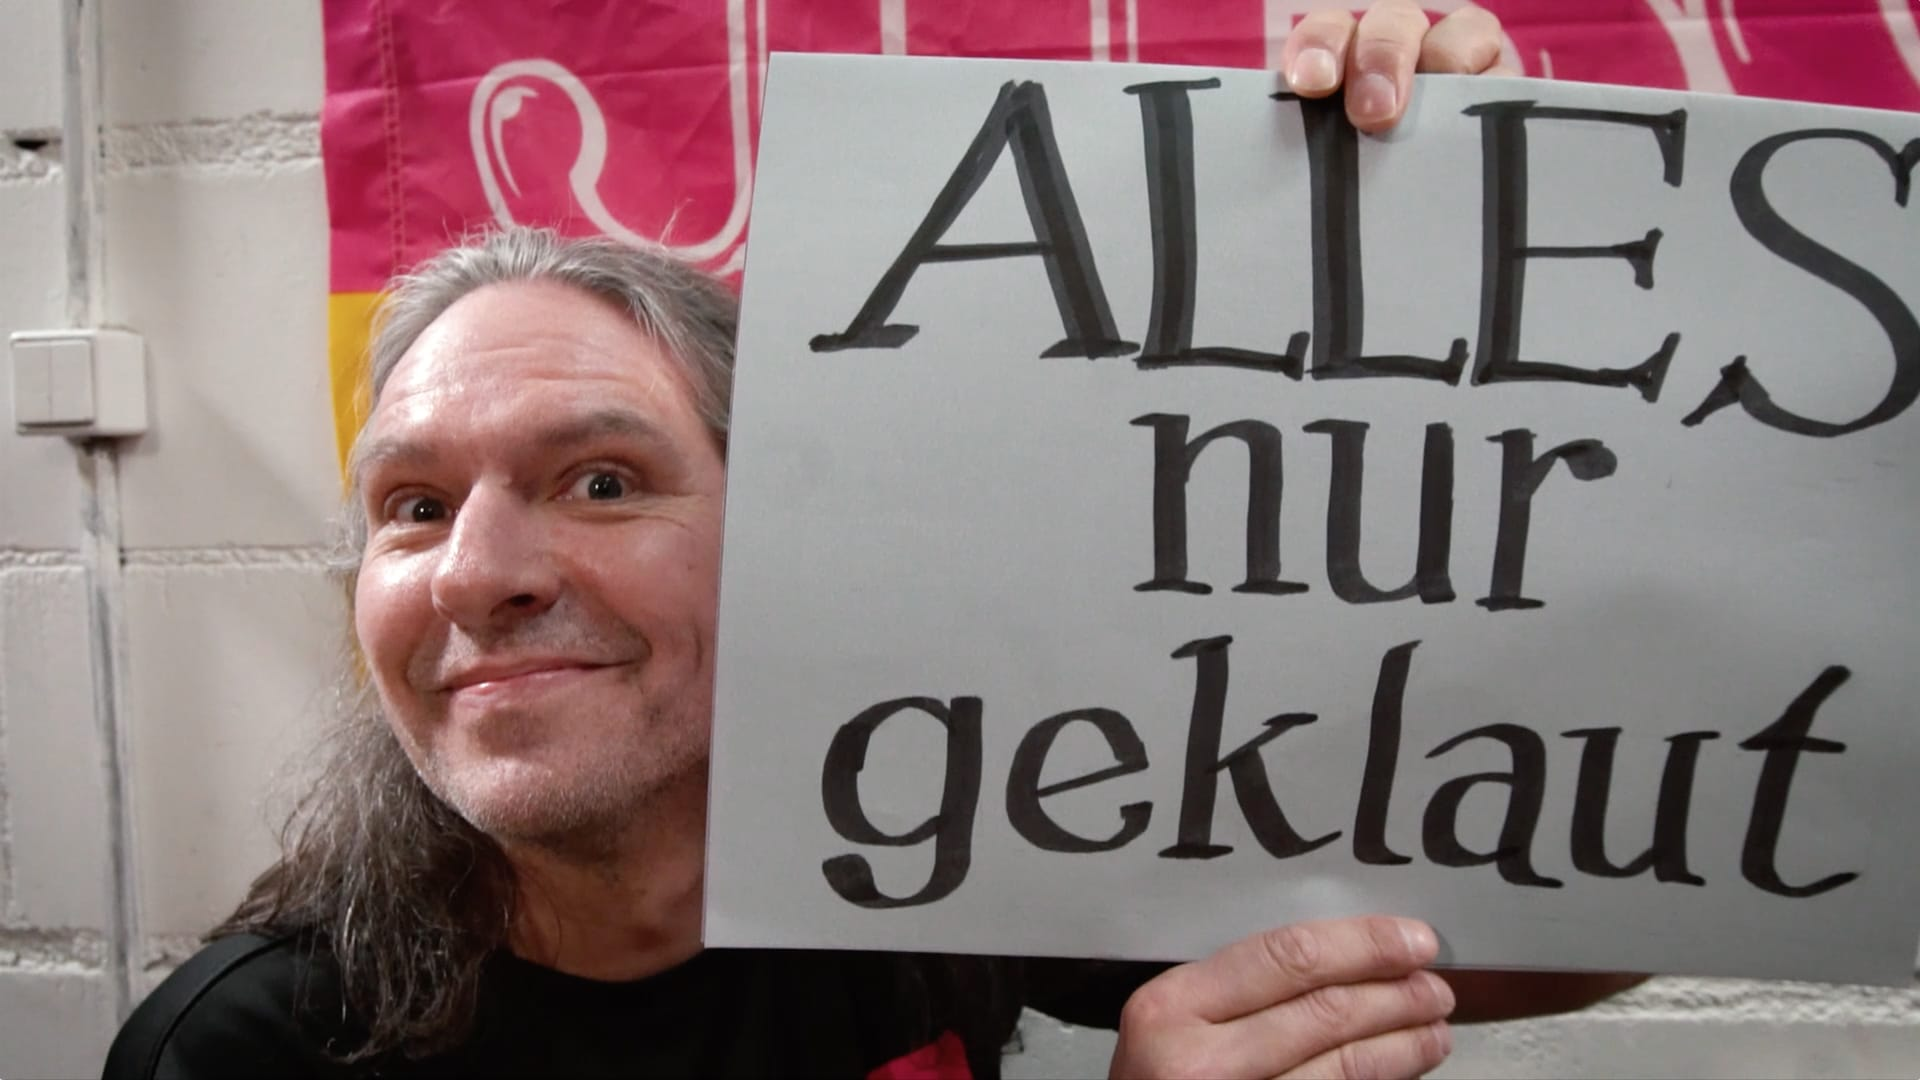 Alles nur geklaut (Official Lyric Video)